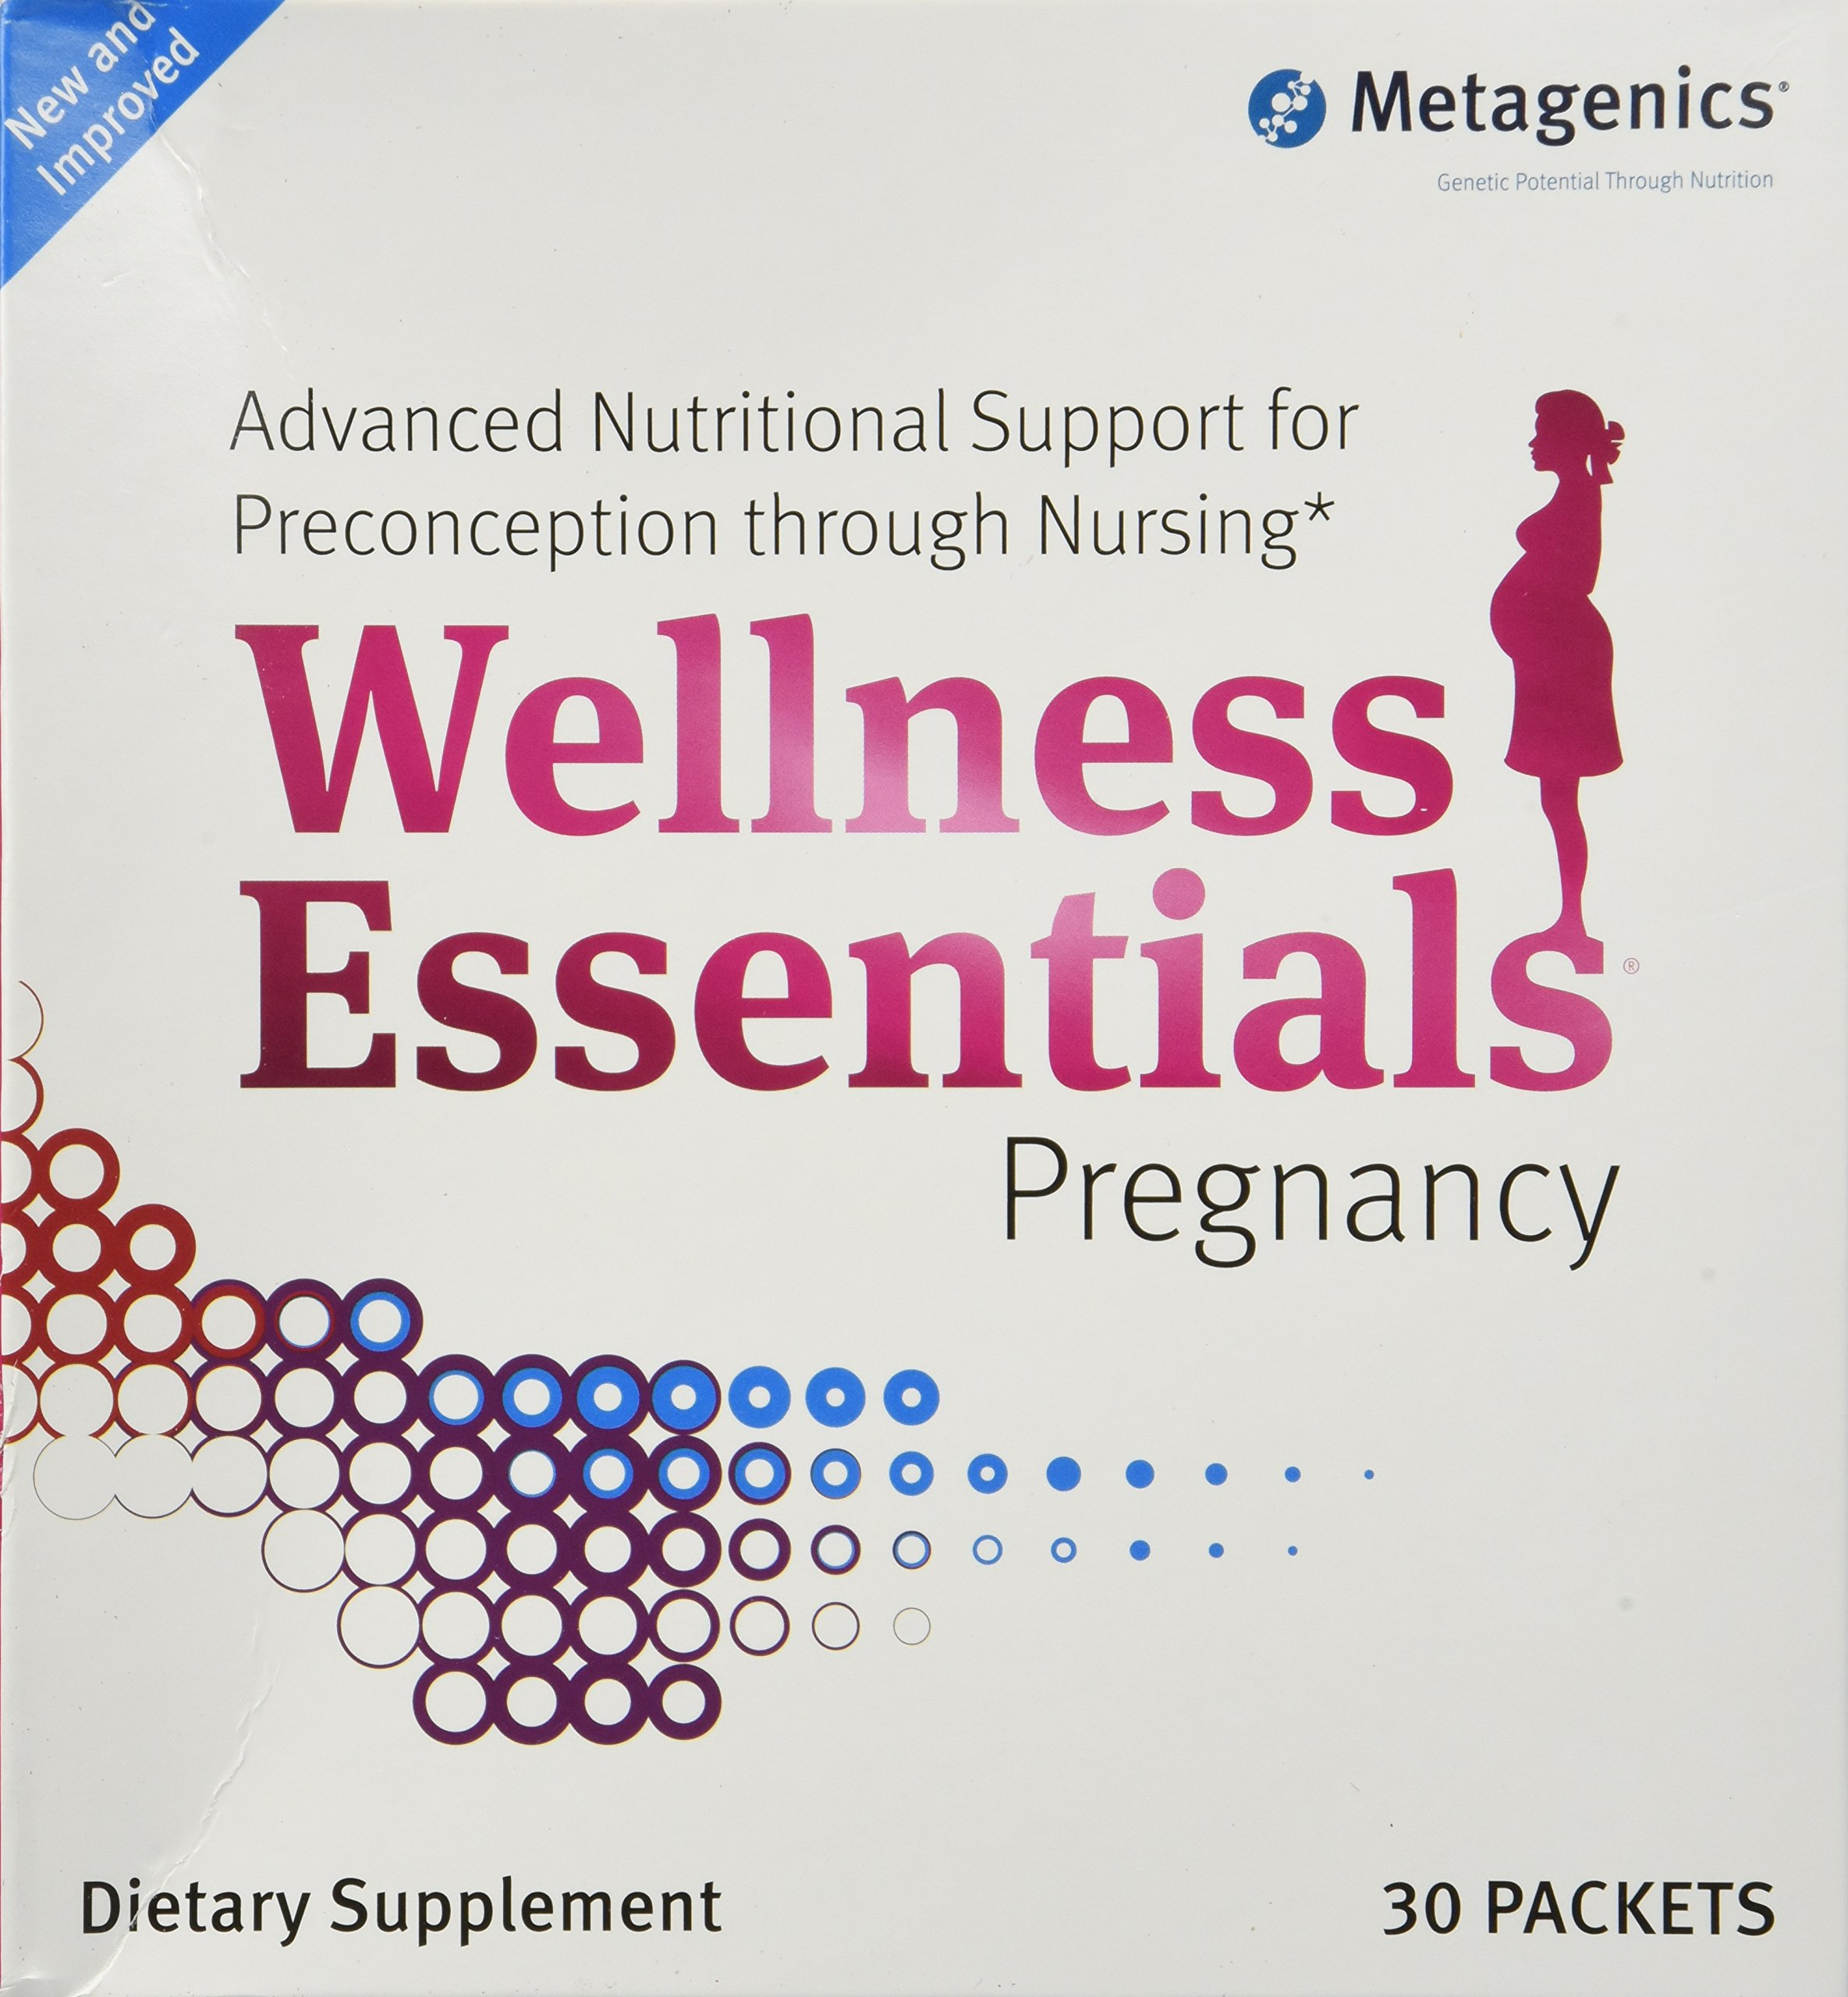 Metagenics Wellness Essentials for Pregnancy -- 30 Packets